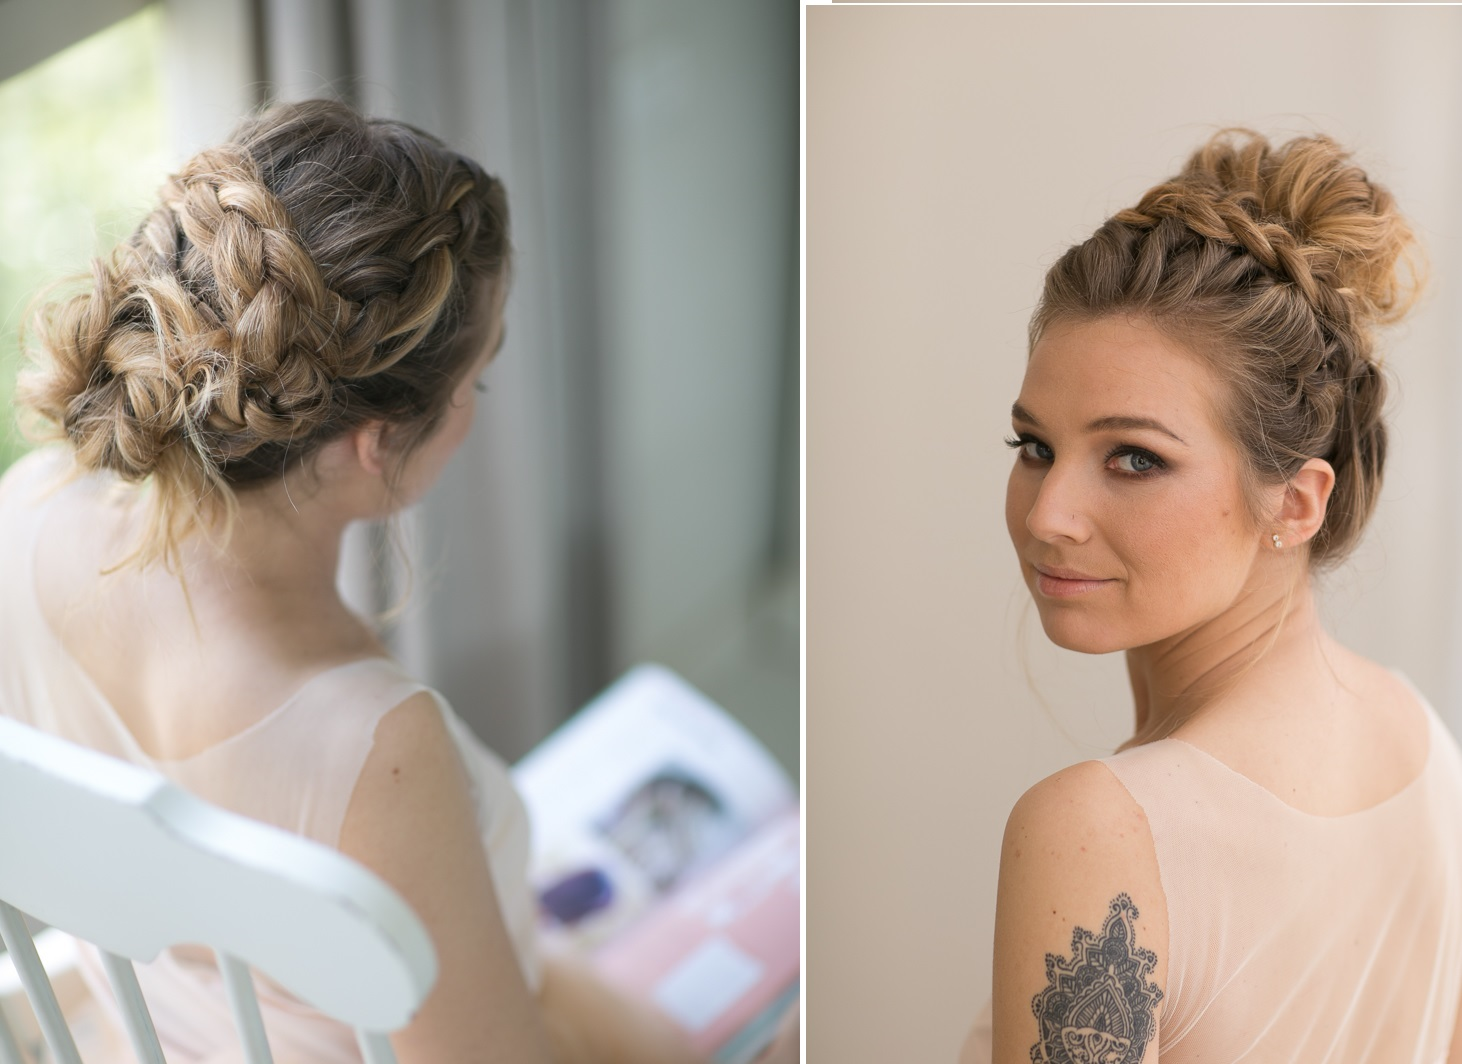 20 Beautiful Bridesmaids Hairstyles - Trend New New Hairstyle Trends